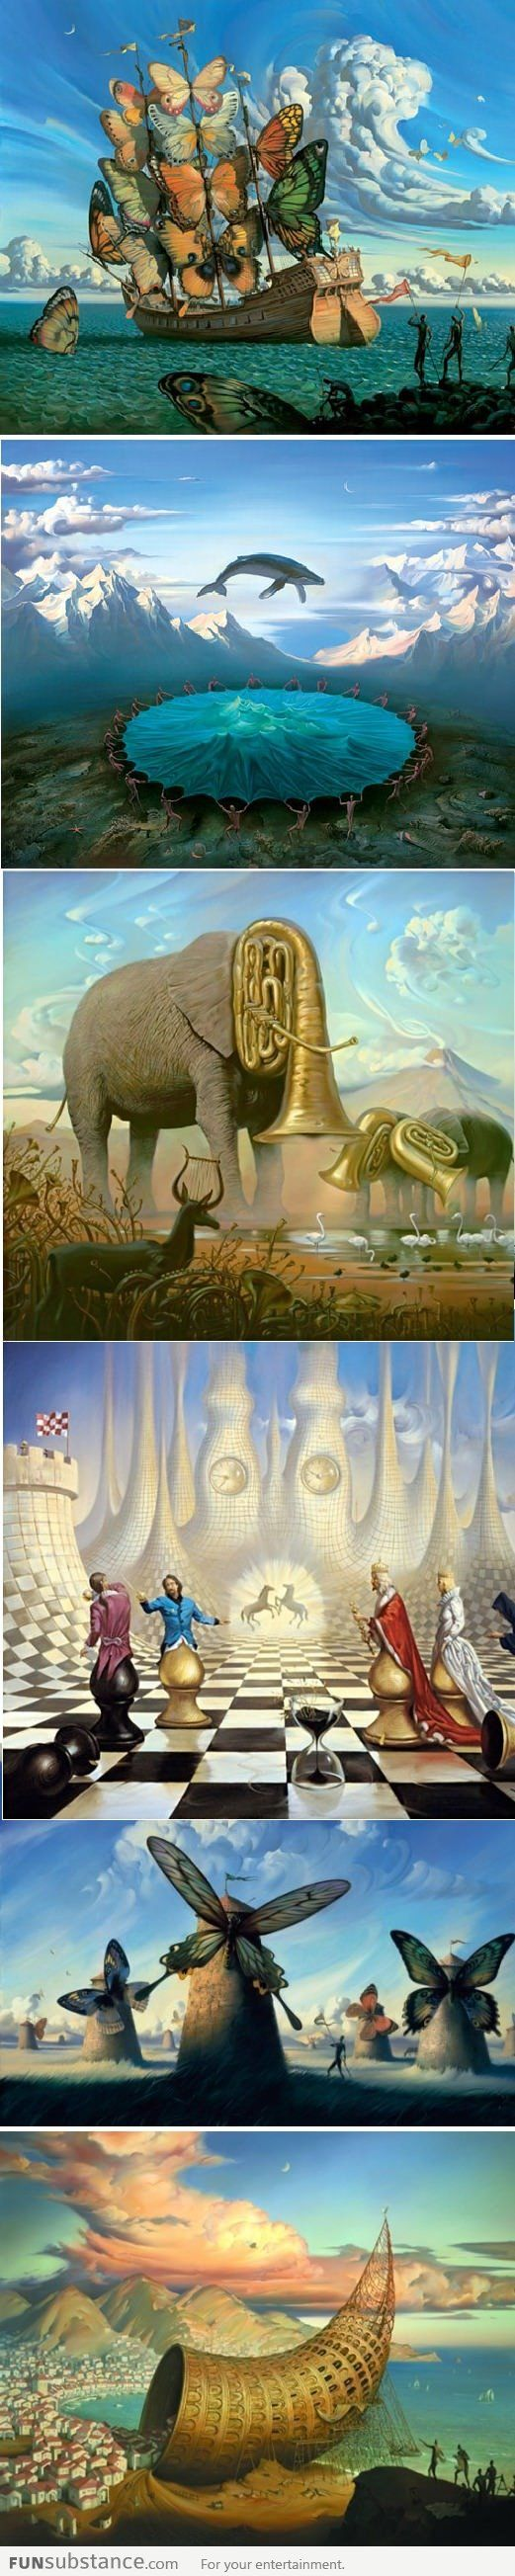 Surrealistic painter: Vladimir Kush - FunSubstance.com